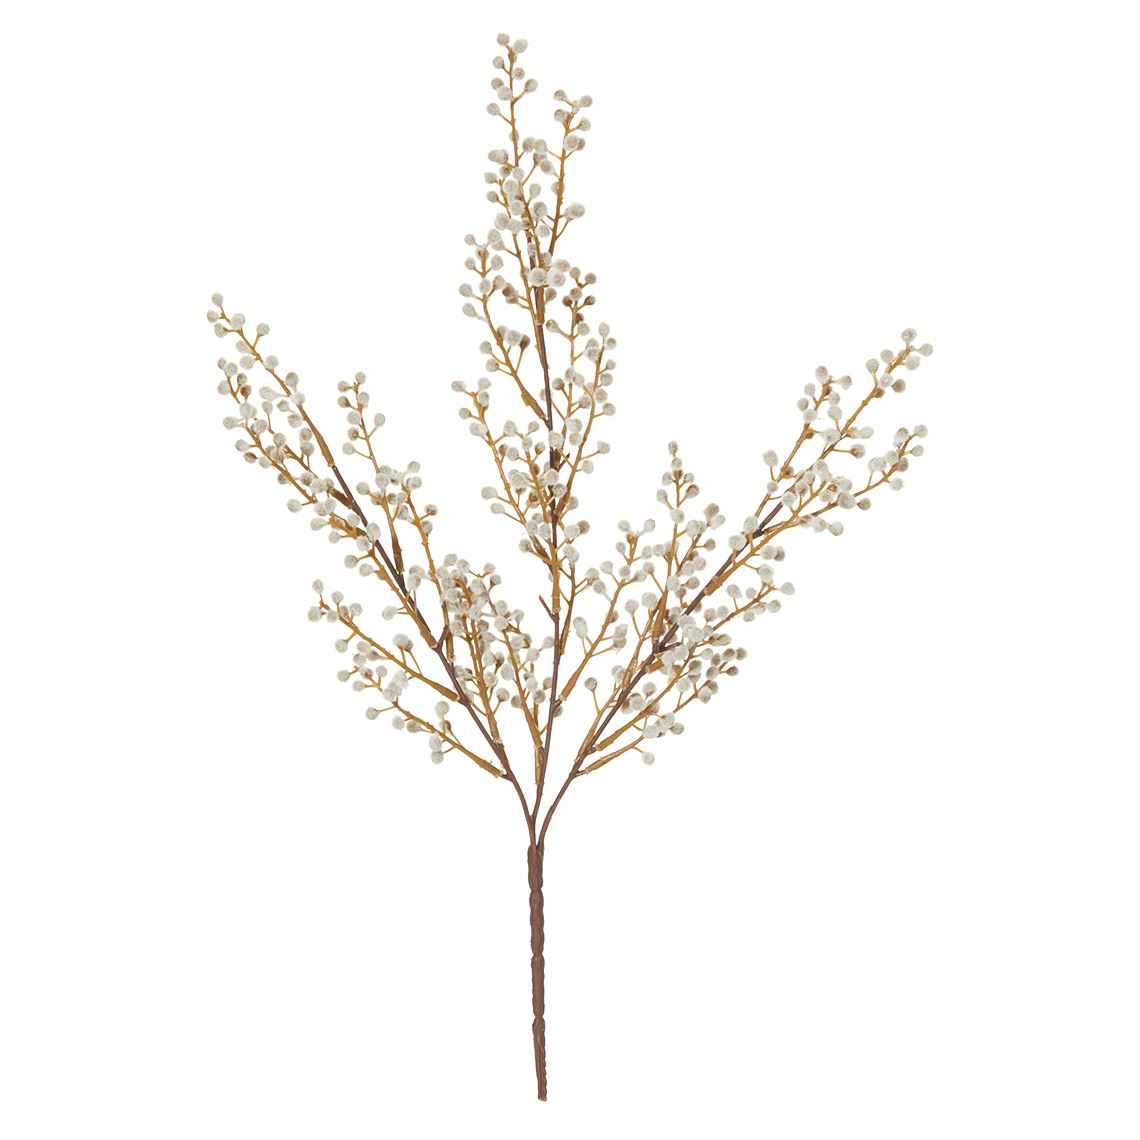 Mini Willow Bush Size W 25cm x D 10cm x H 48cm in Natural Plastic/Fabric/Wire Freedom by Freedom, a Plants for sale on Style Sourcebook